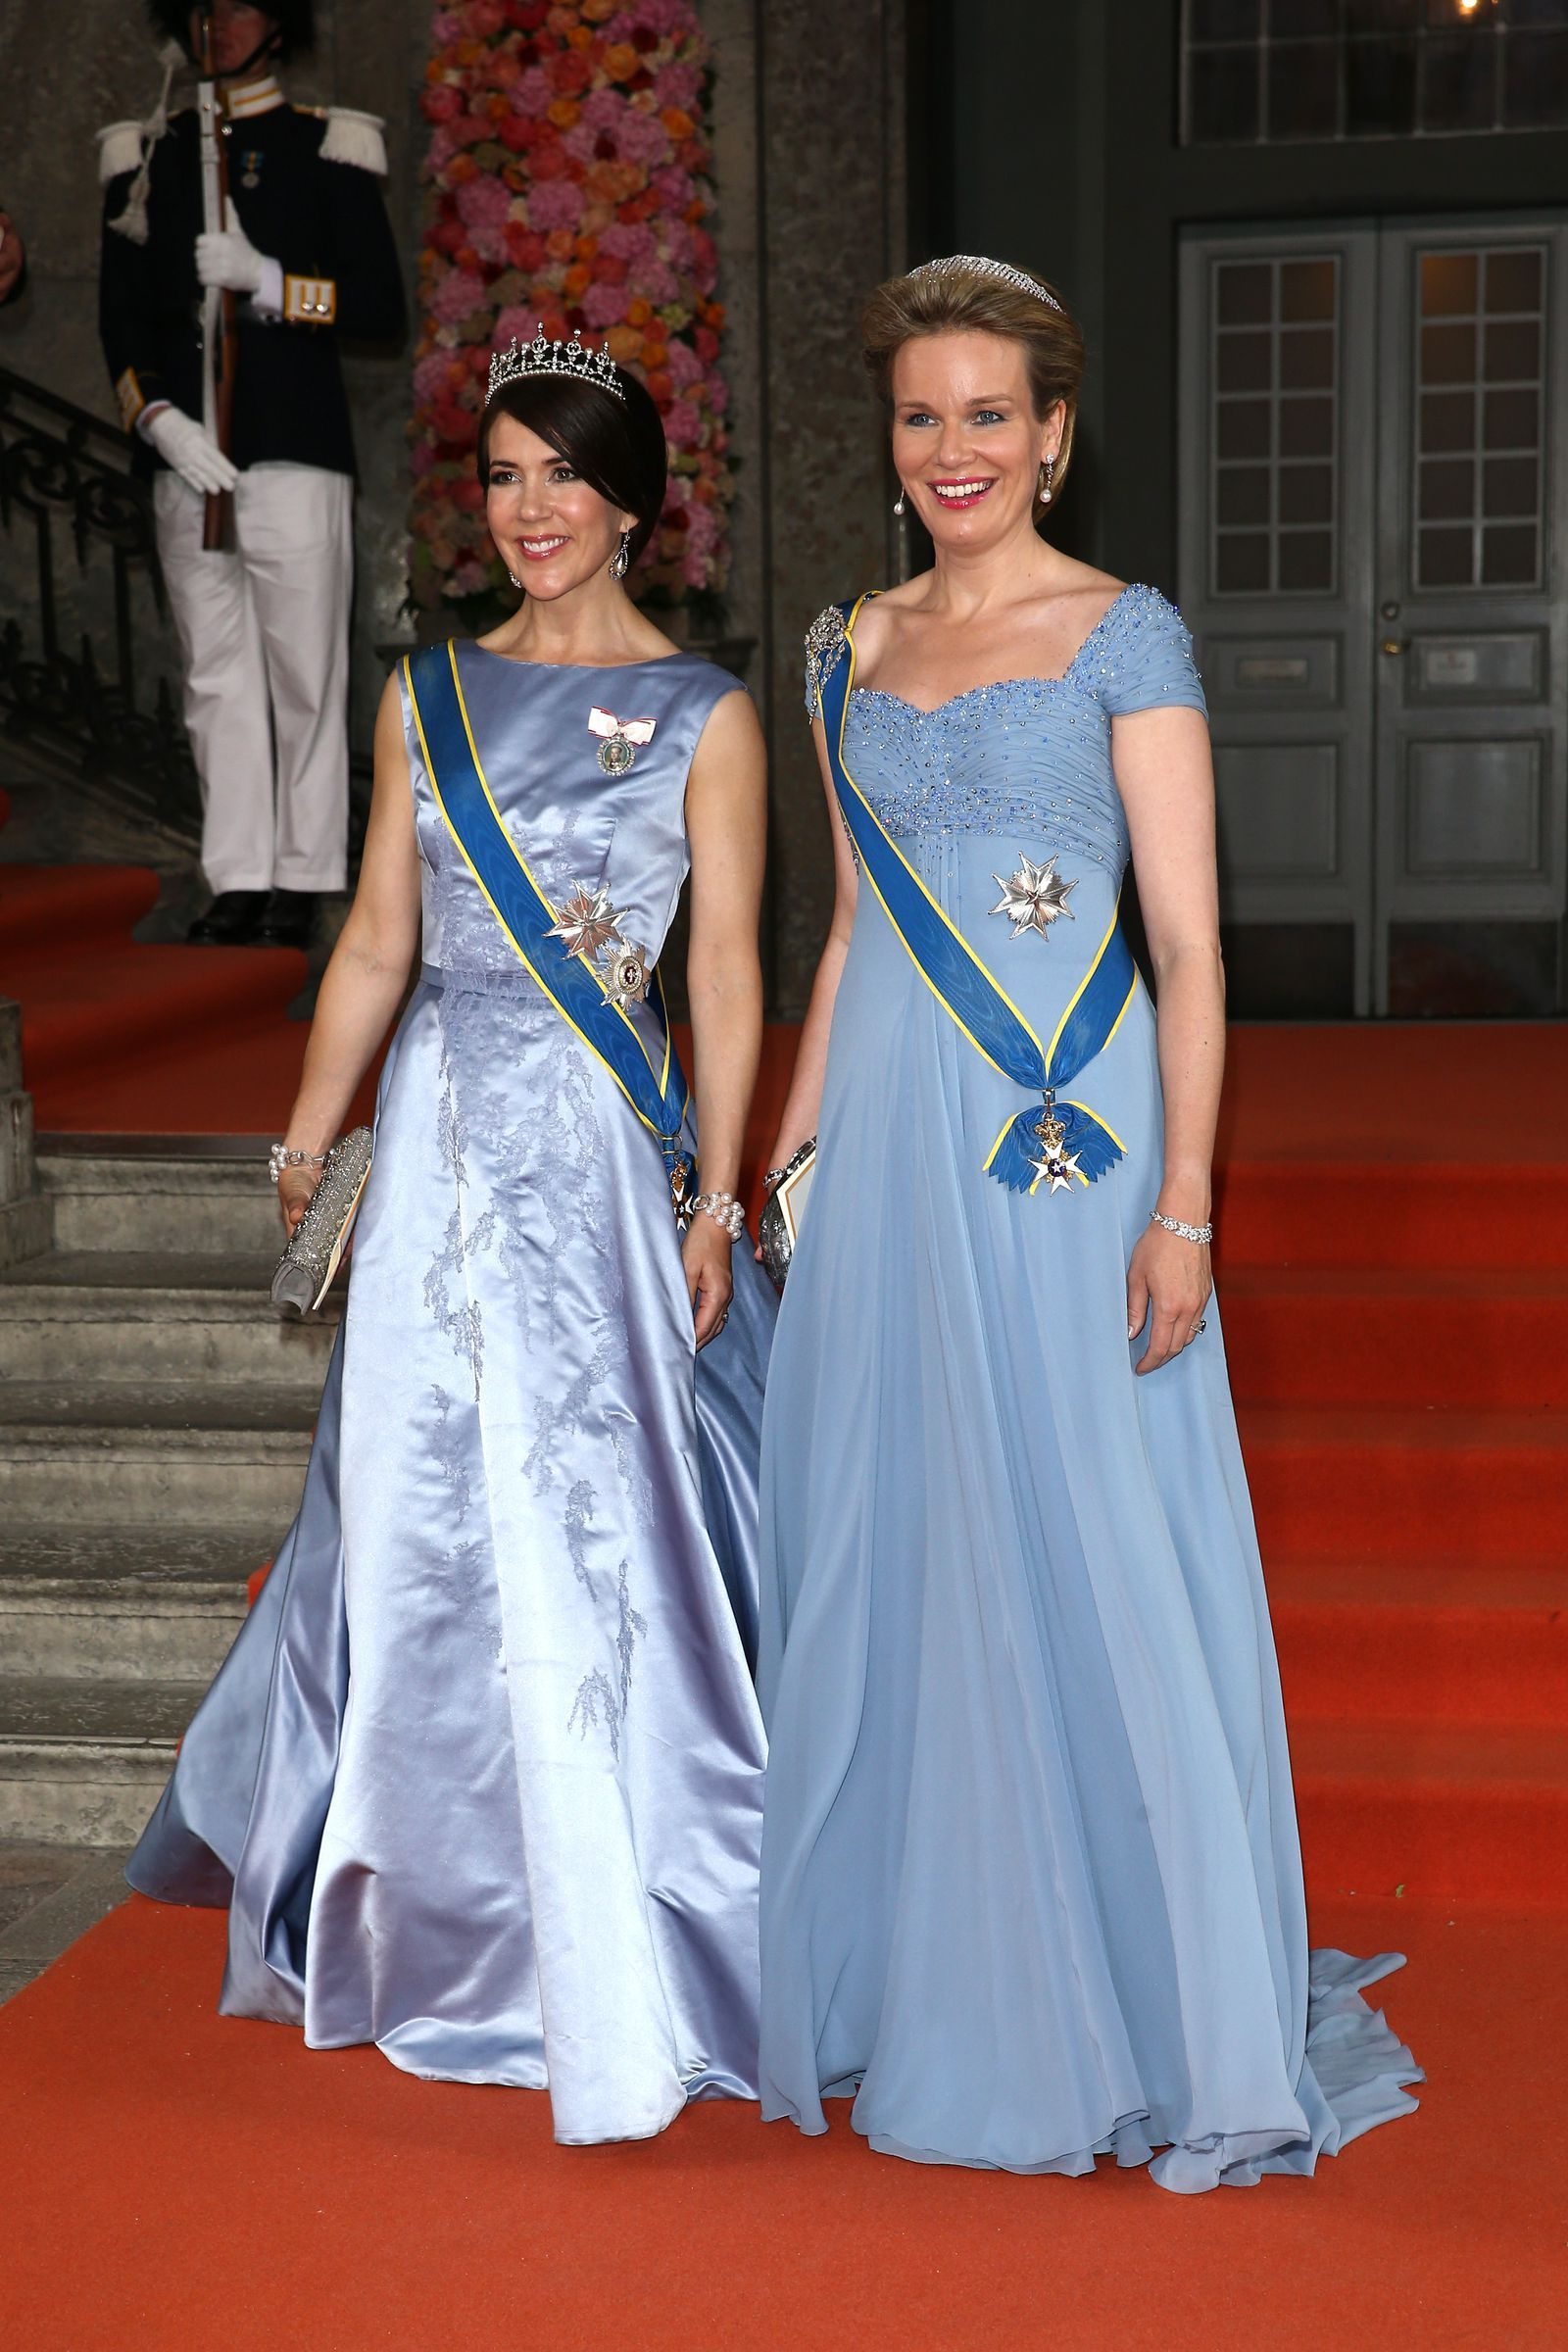 52 Dresses From the Swedish Royal Wedding You Have to See to Believe ...